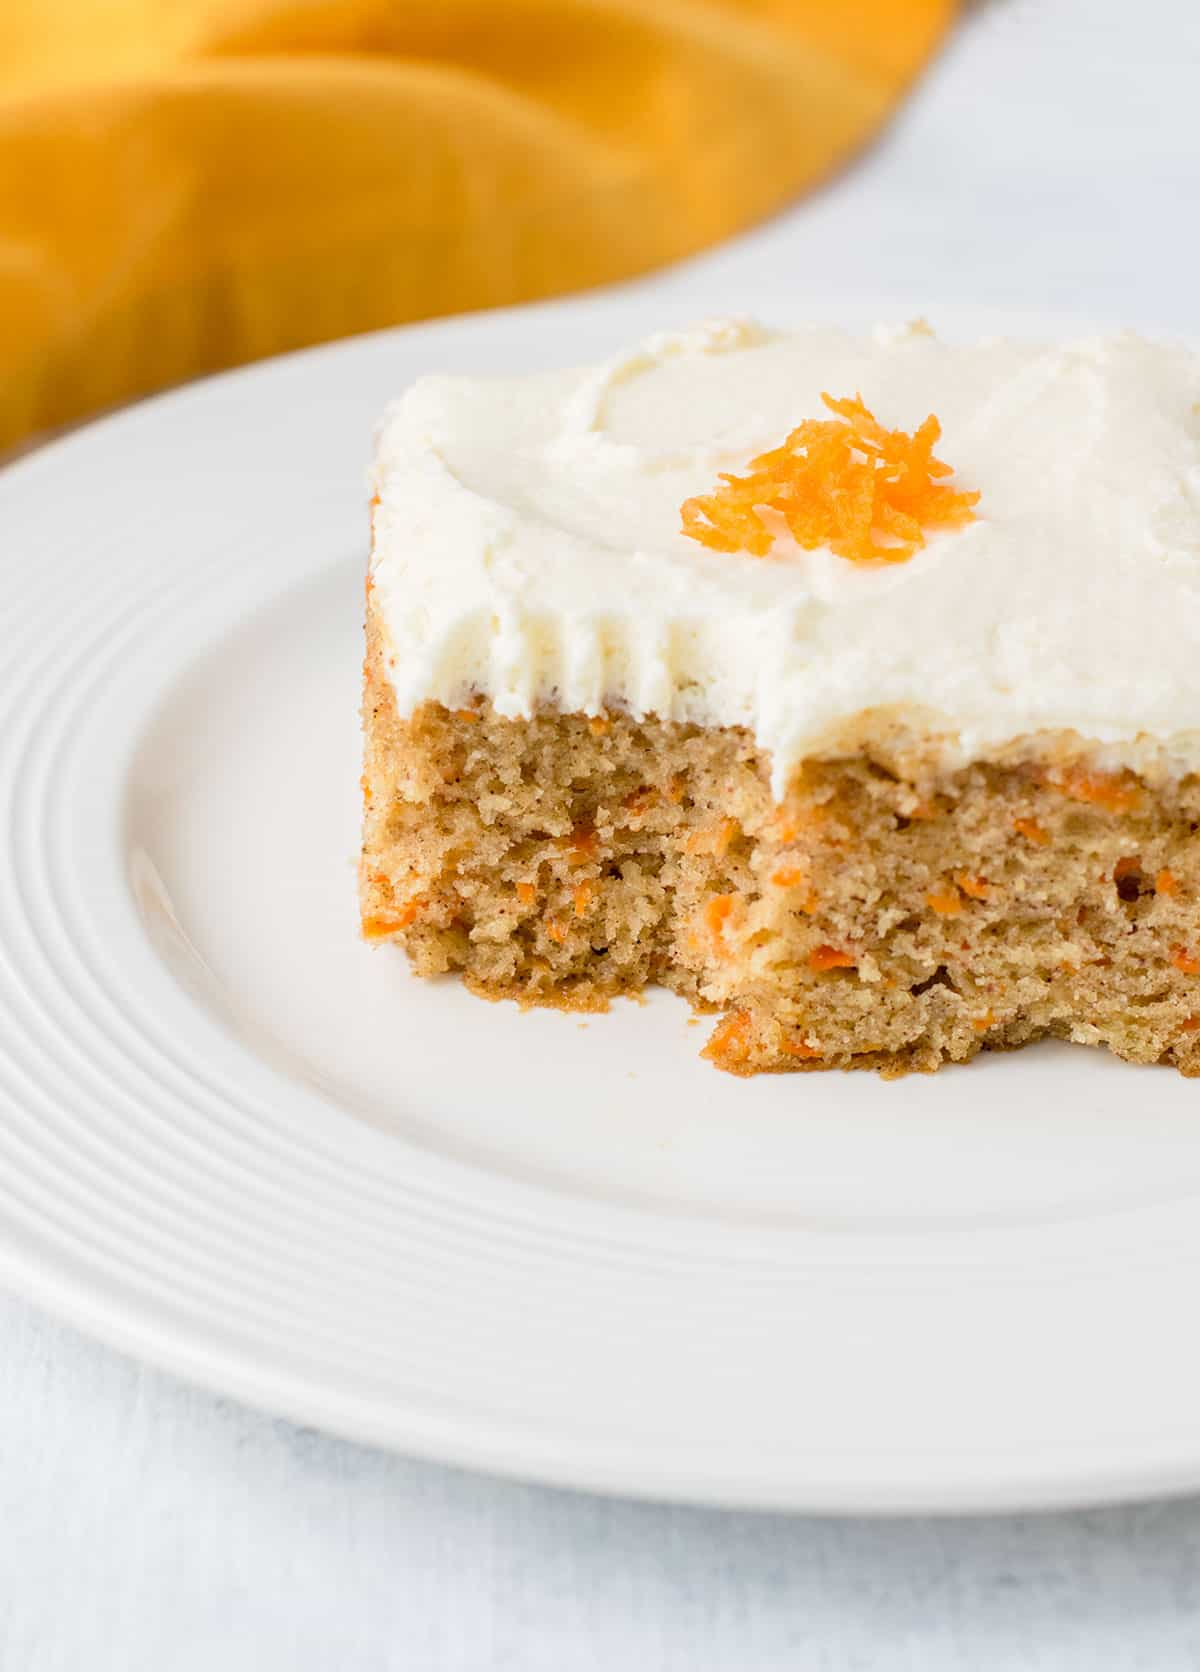 slice of single-layer carrot cake with bite missing